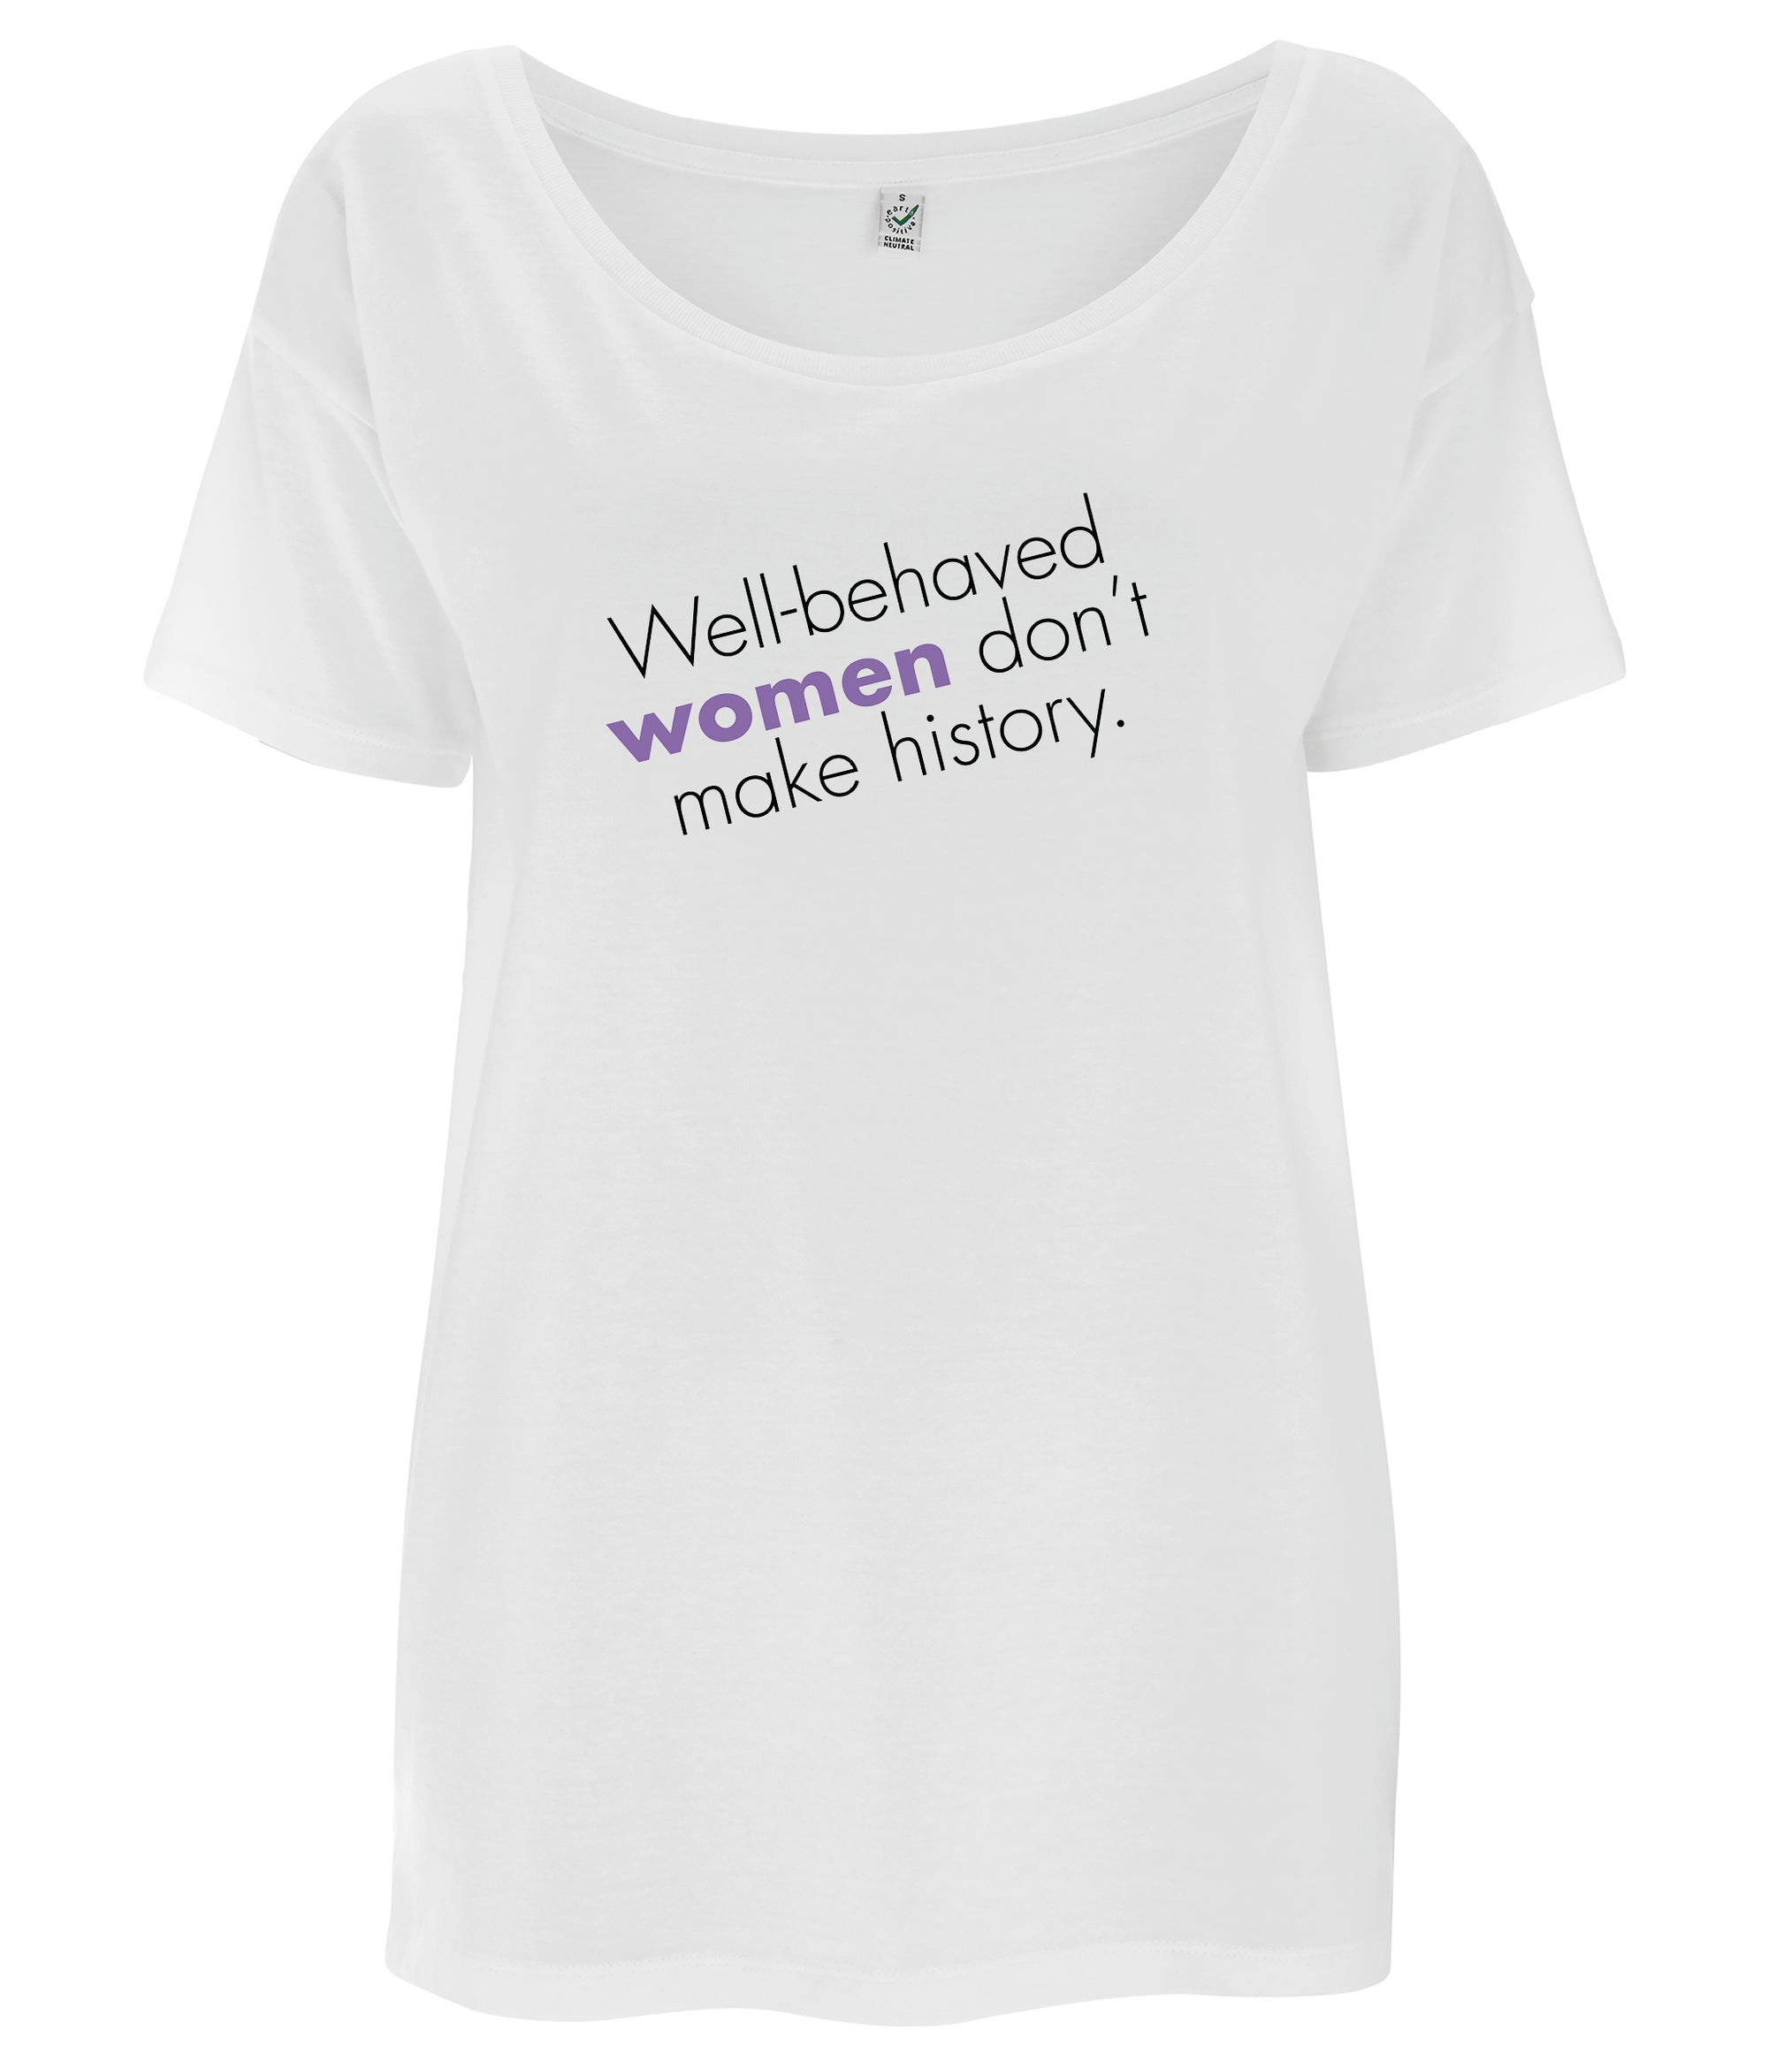 Well Behaved Women Don't Make History Tencel Blend Oversized Feminist T Shirt Black